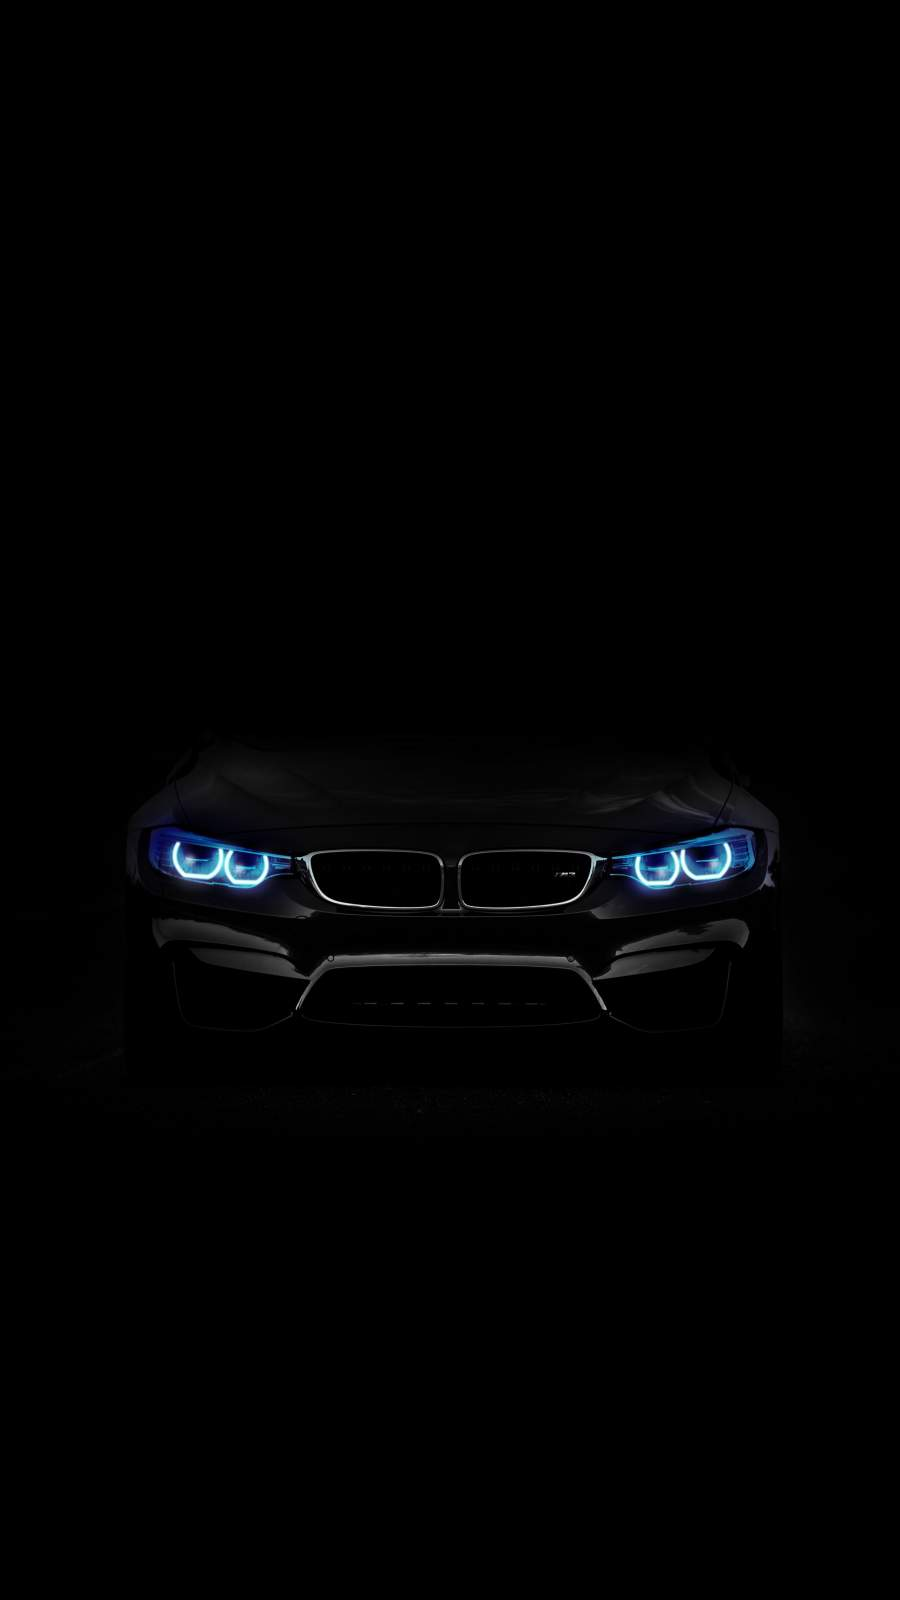 BMW Angel Eyes iPhone Wallpaper